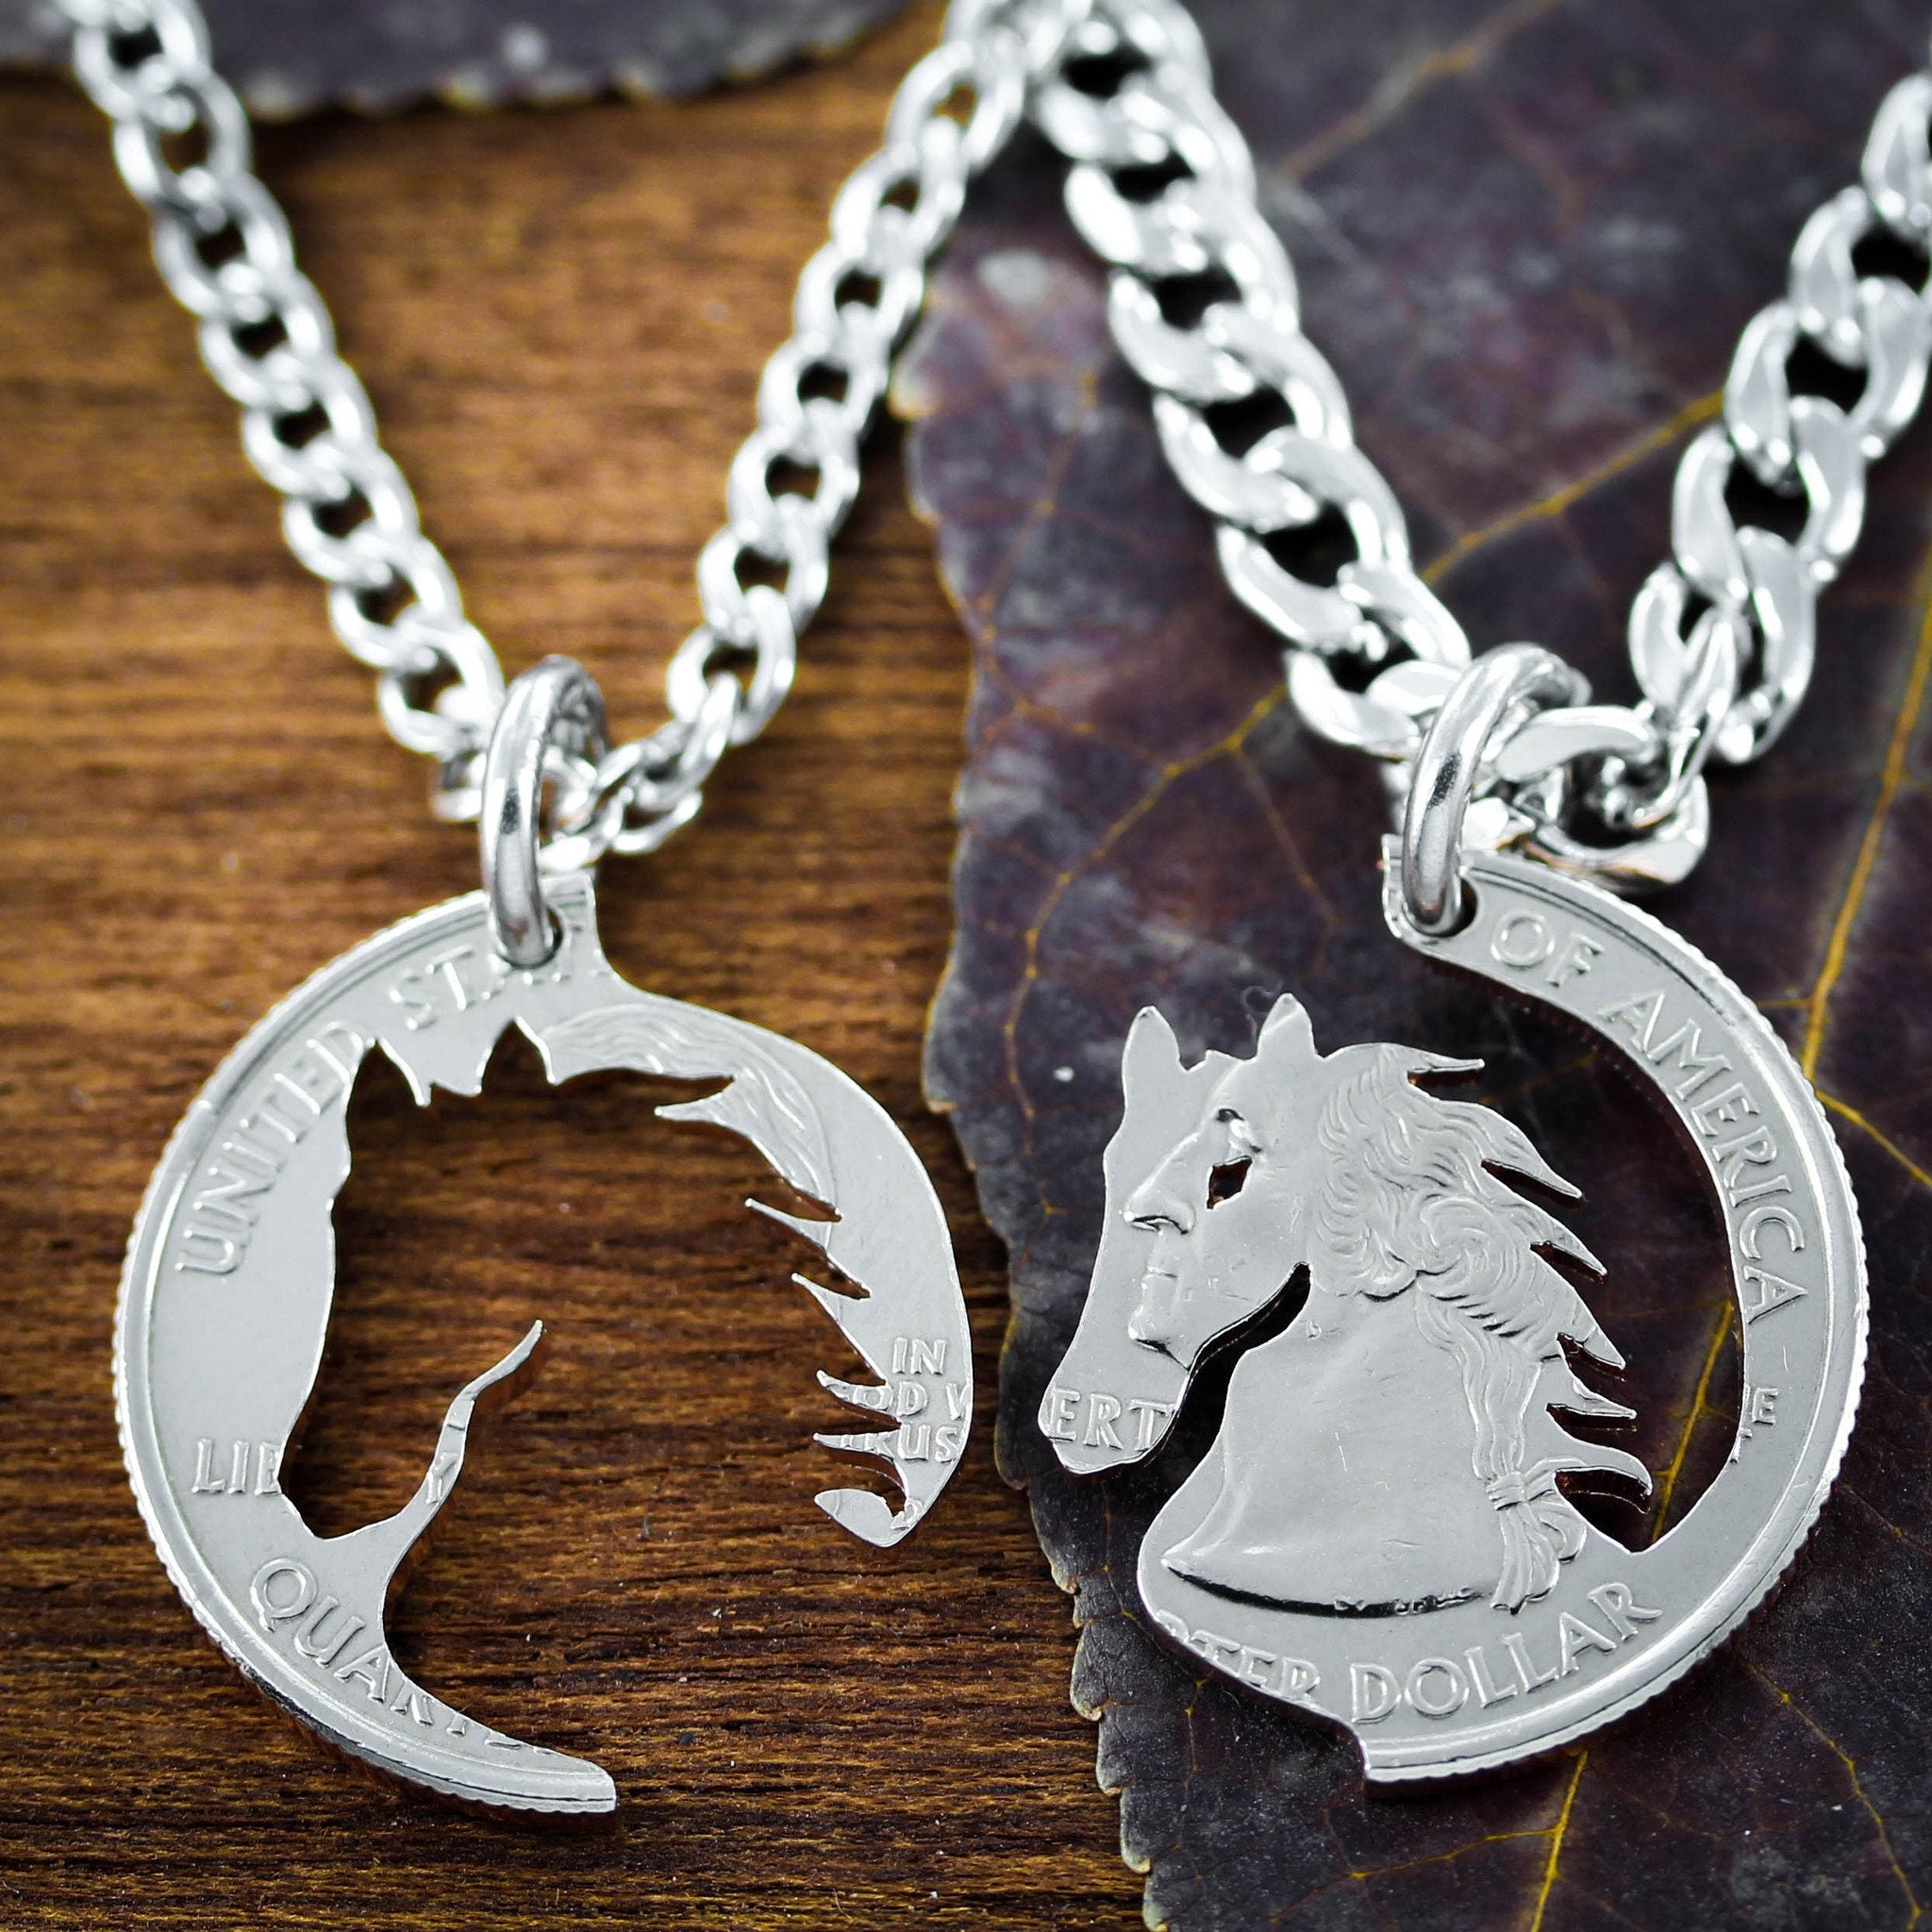 lovers winning carries round plain and it baby pn simple pony of silver framed products but portrait aeravida pendant horse look sterling for profoundly details set horses crafted powerful may equestrian necklace this message necklaces a